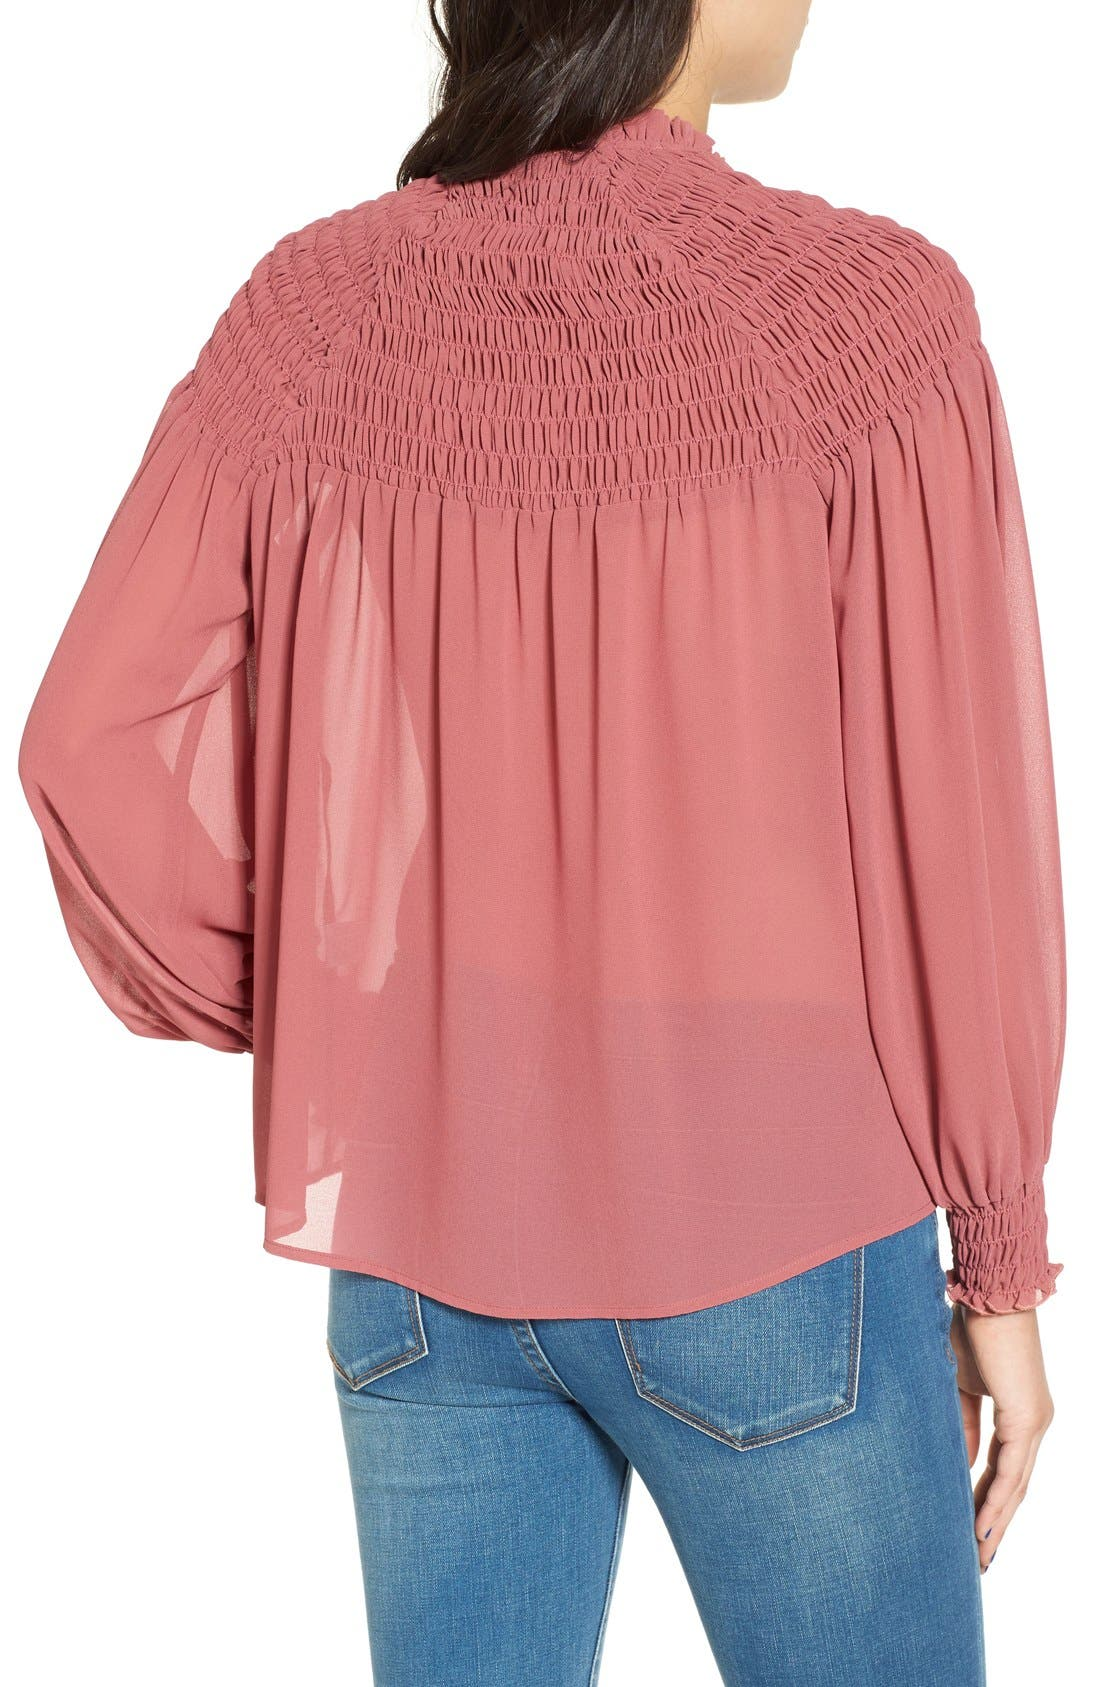 Alternate Image 3  - WAYF 'Russell' Chiffon Blouse